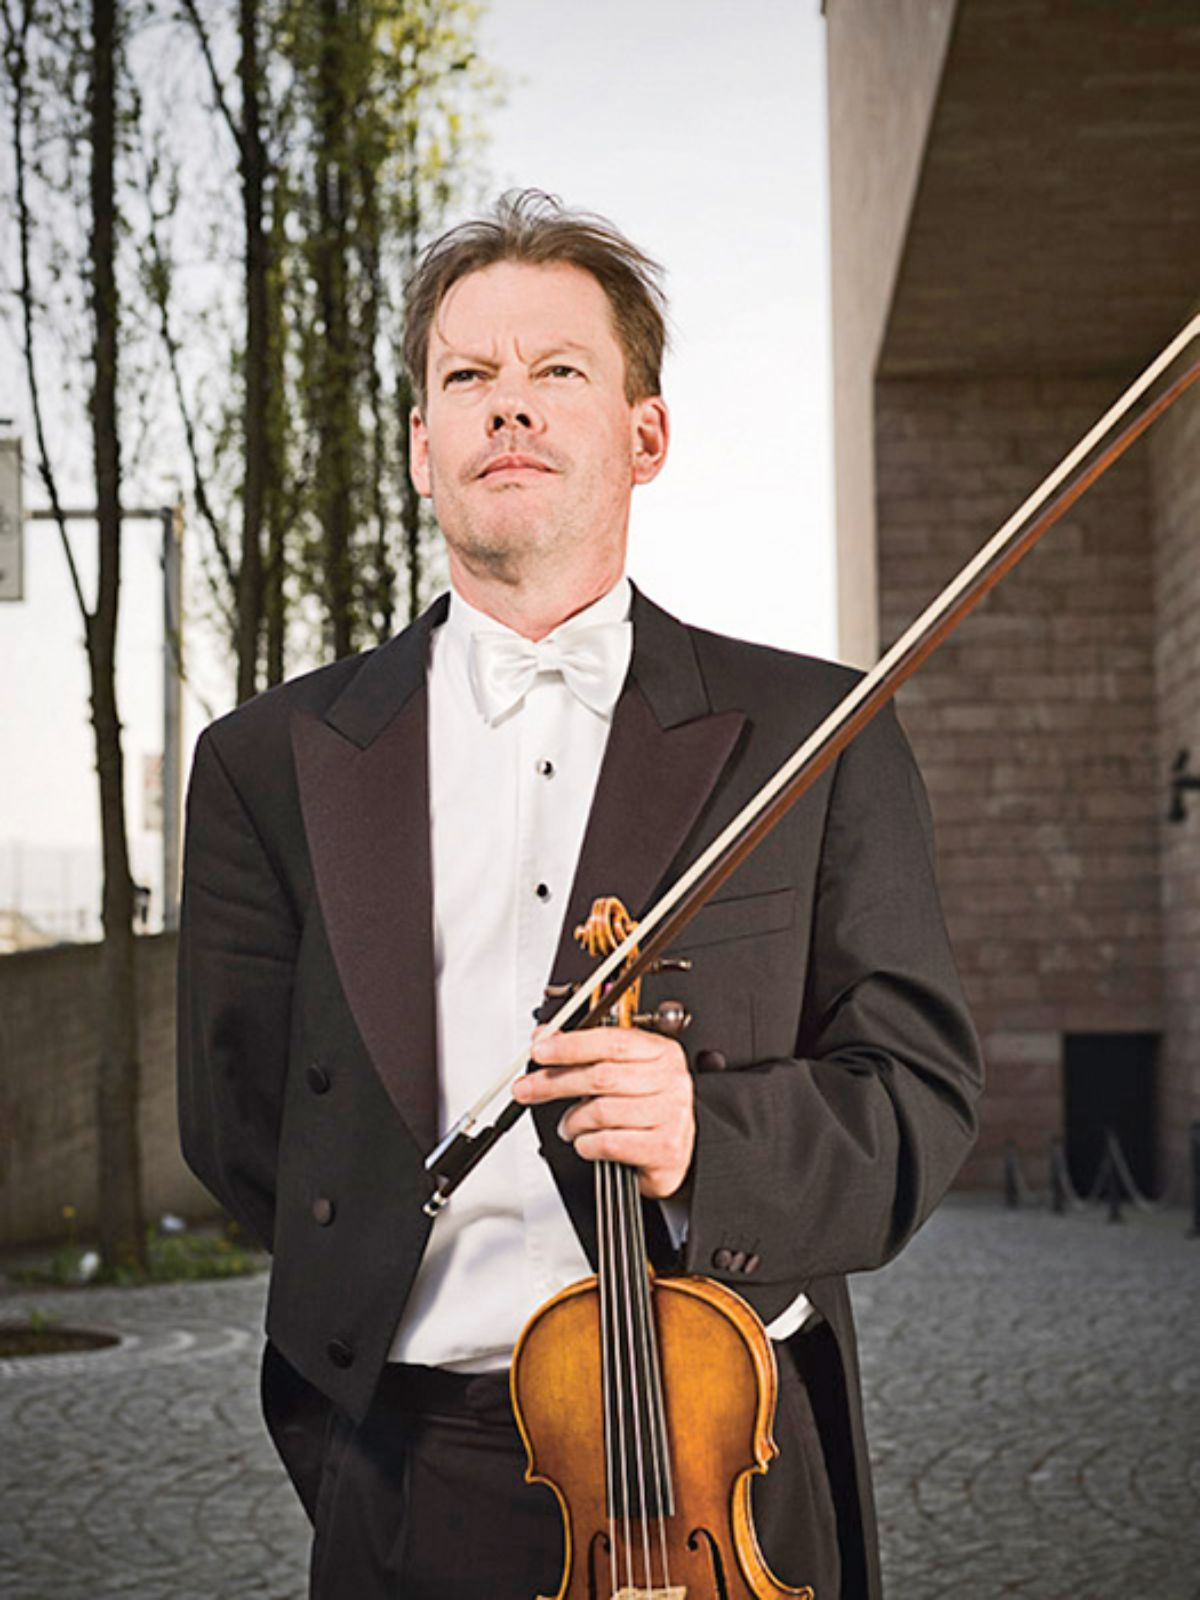 Richard Westphalen, 2. violin